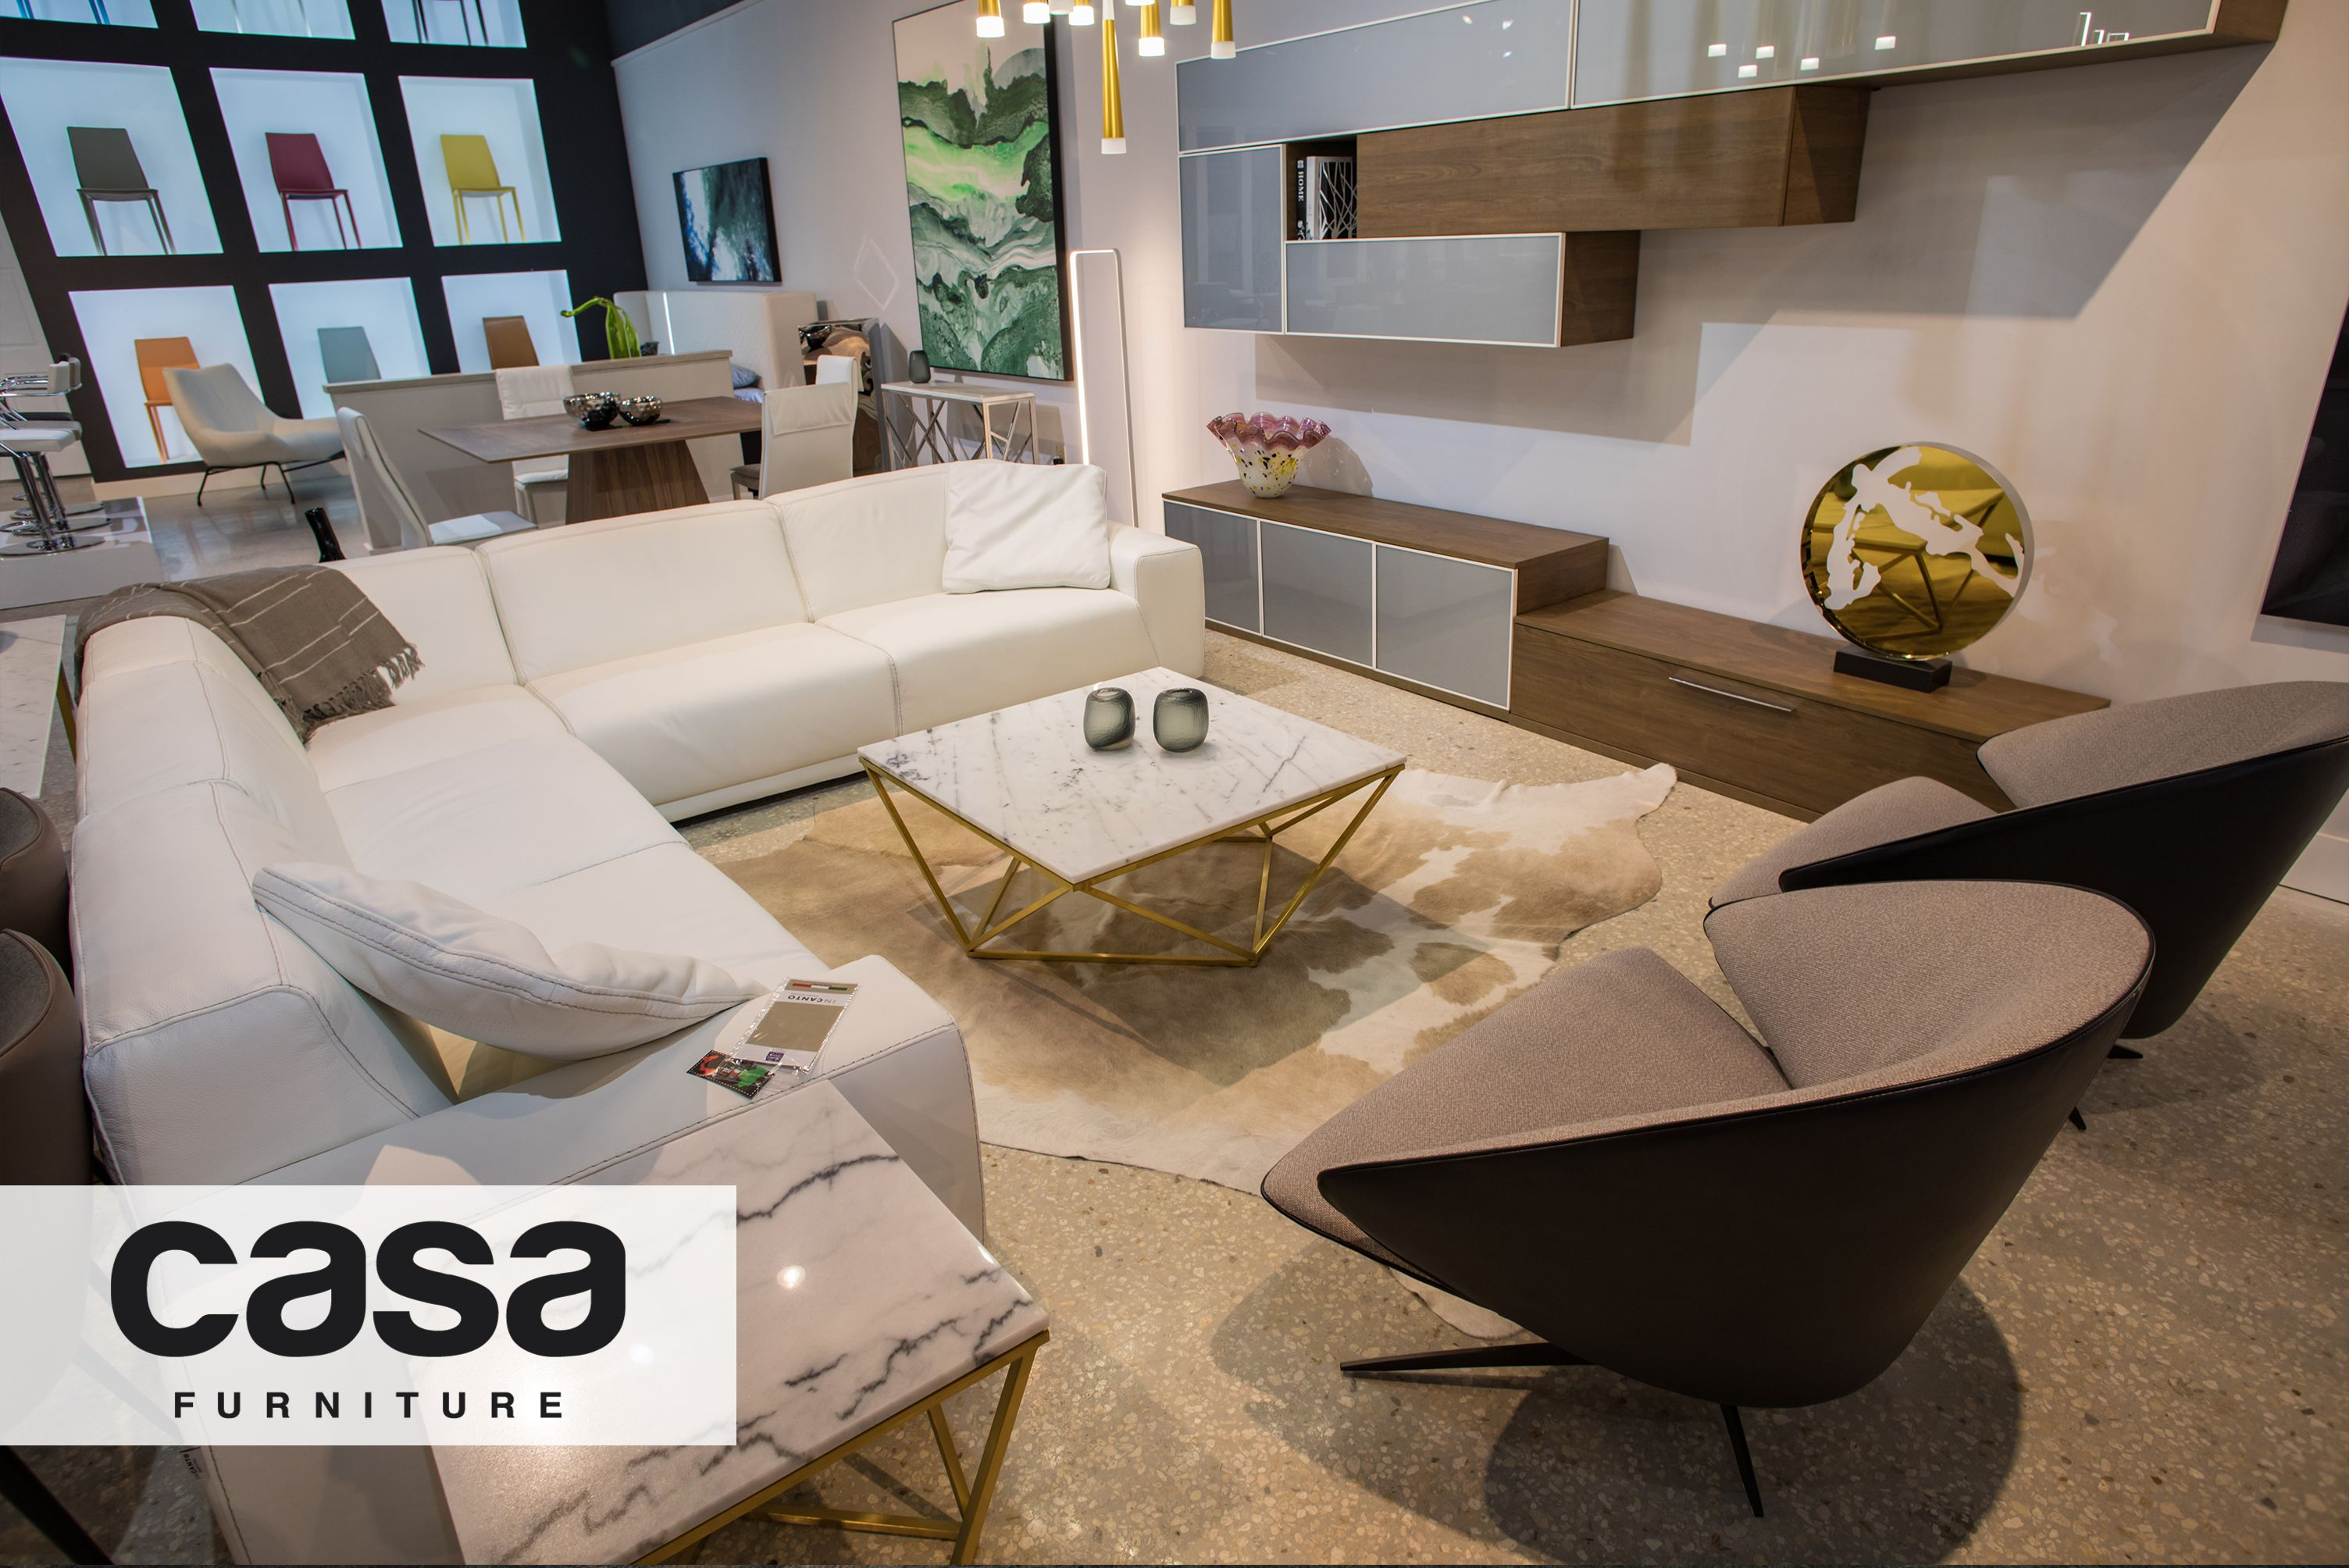 Casa furniture offers the best contemporary and modern furniture all designed with purpose and style for home office come visit our stores in orlando